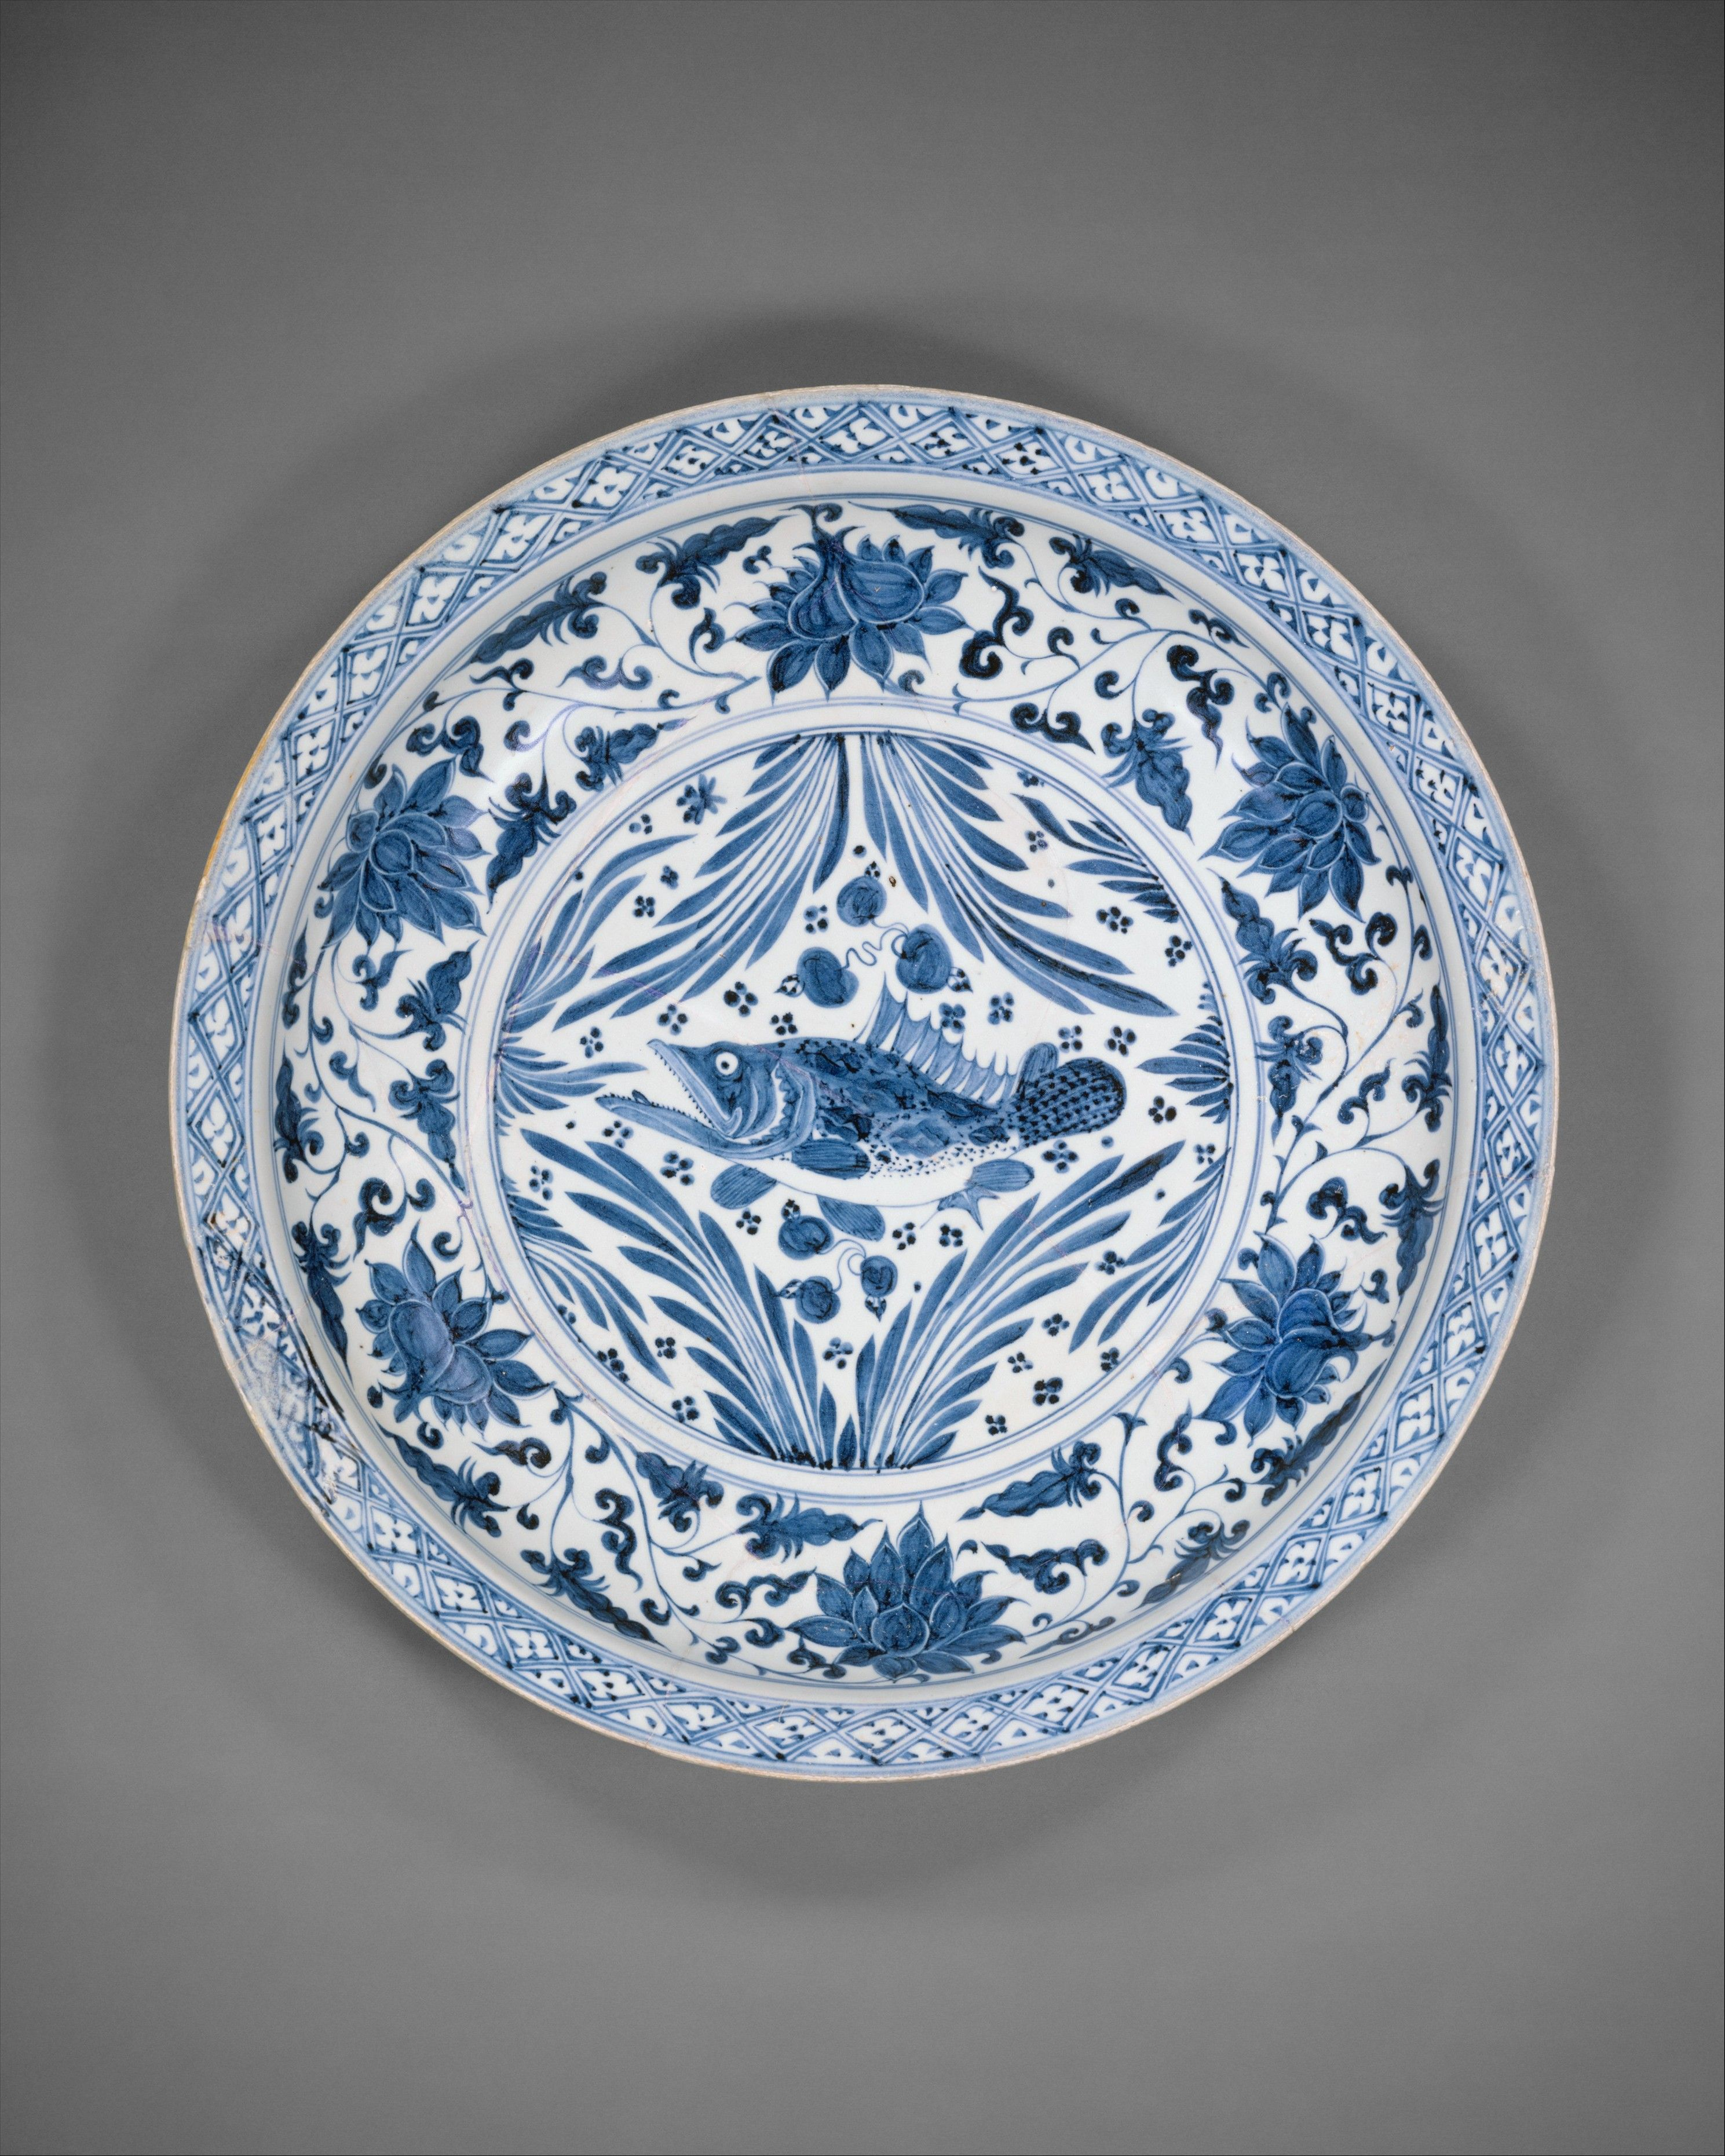 Close examination of the cobalt blue used to paint this dish shows